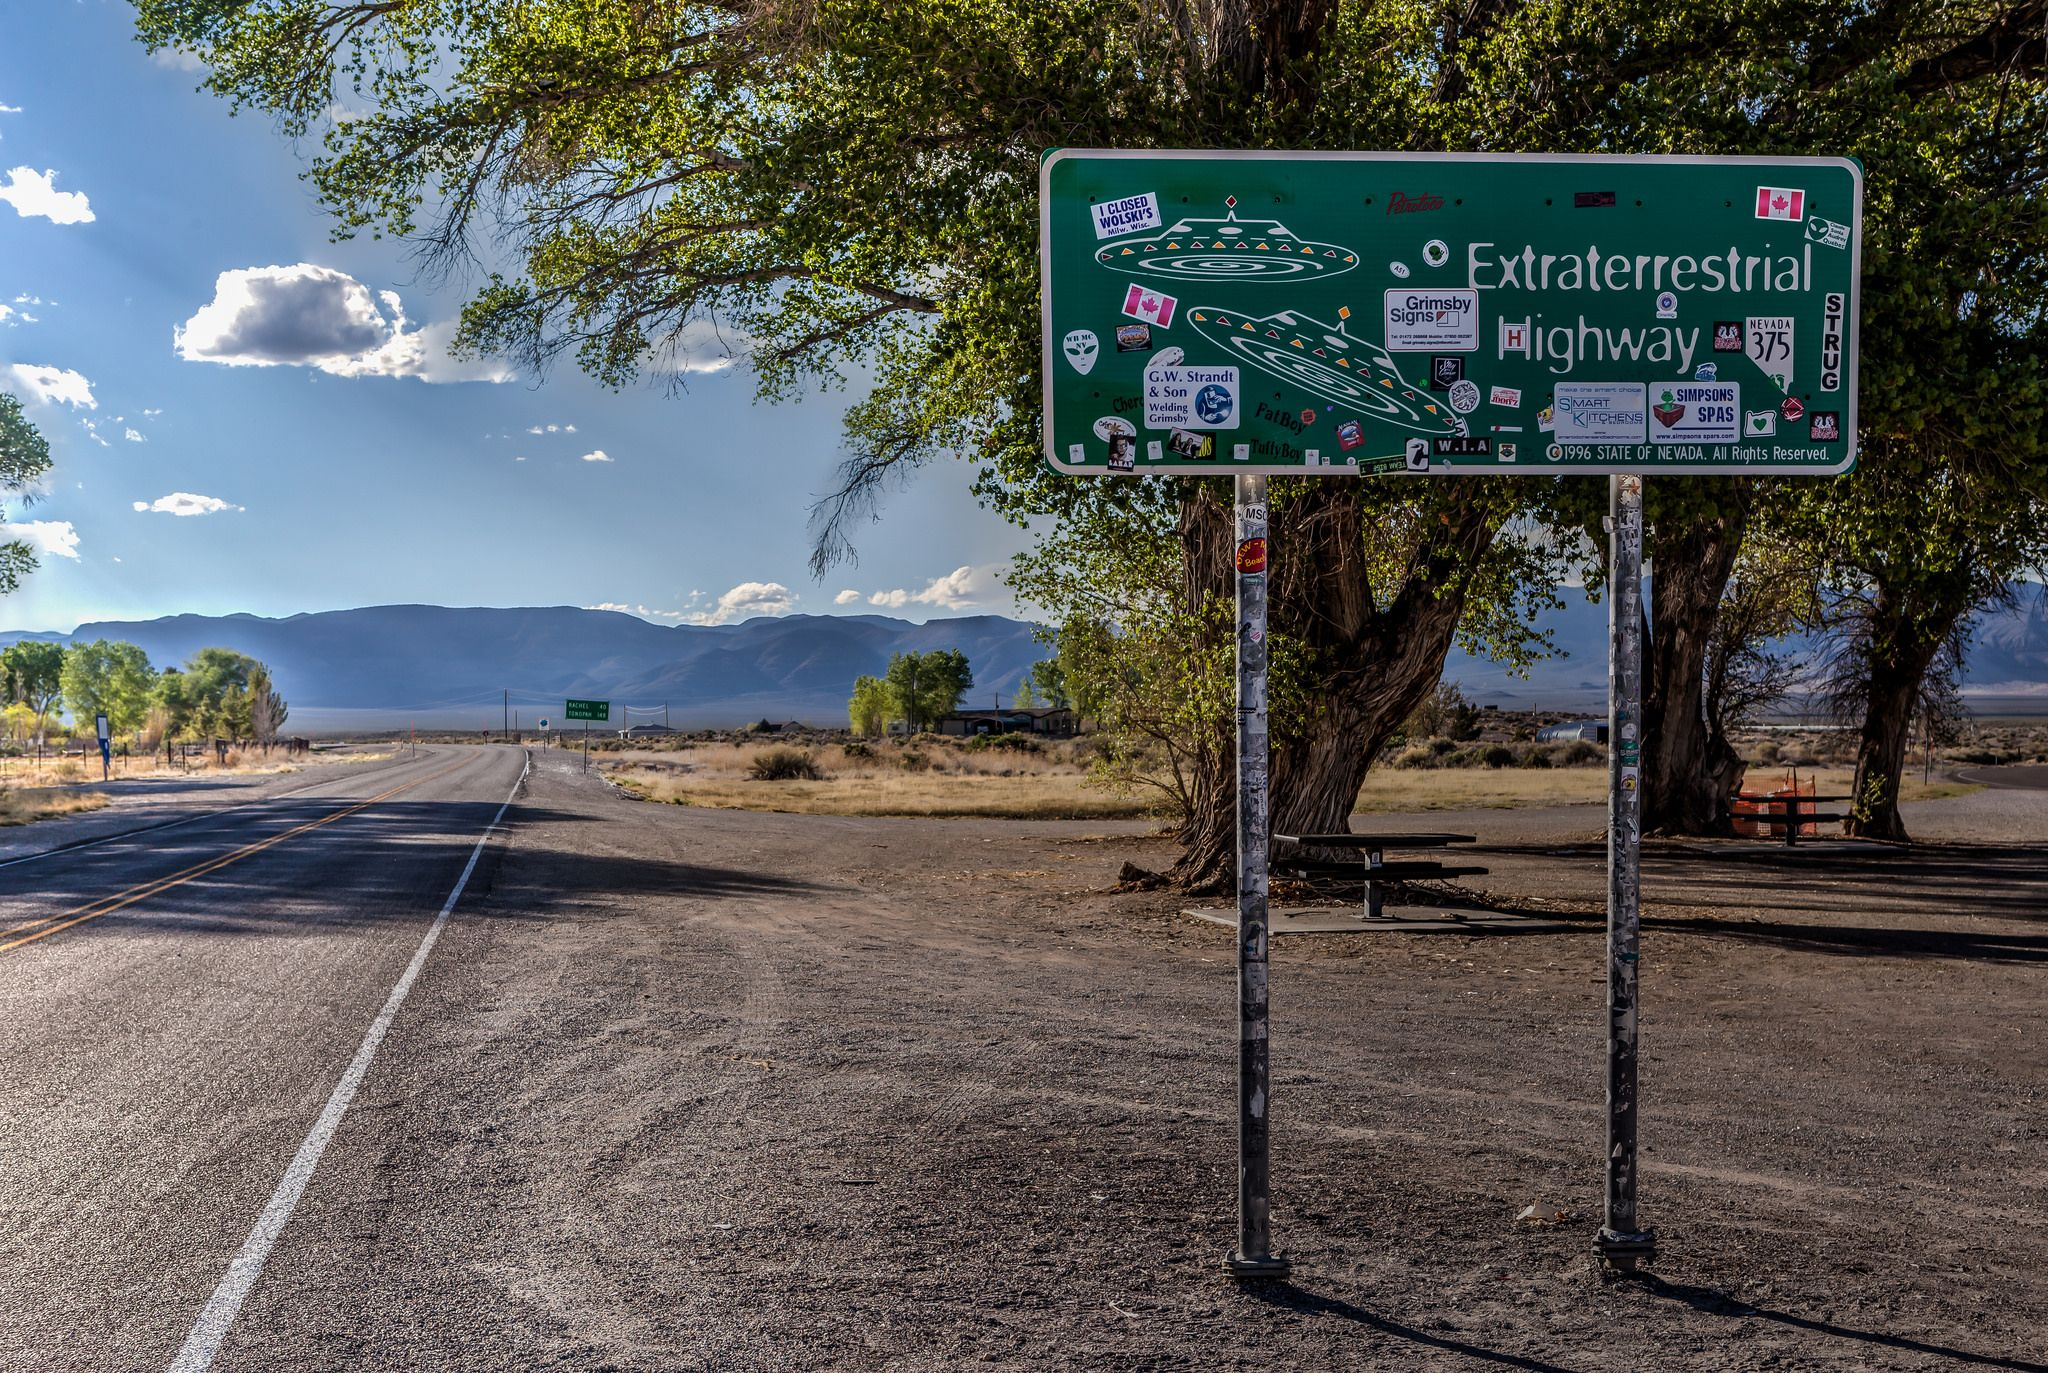 Geocaching along the Extraterrestrial Highway